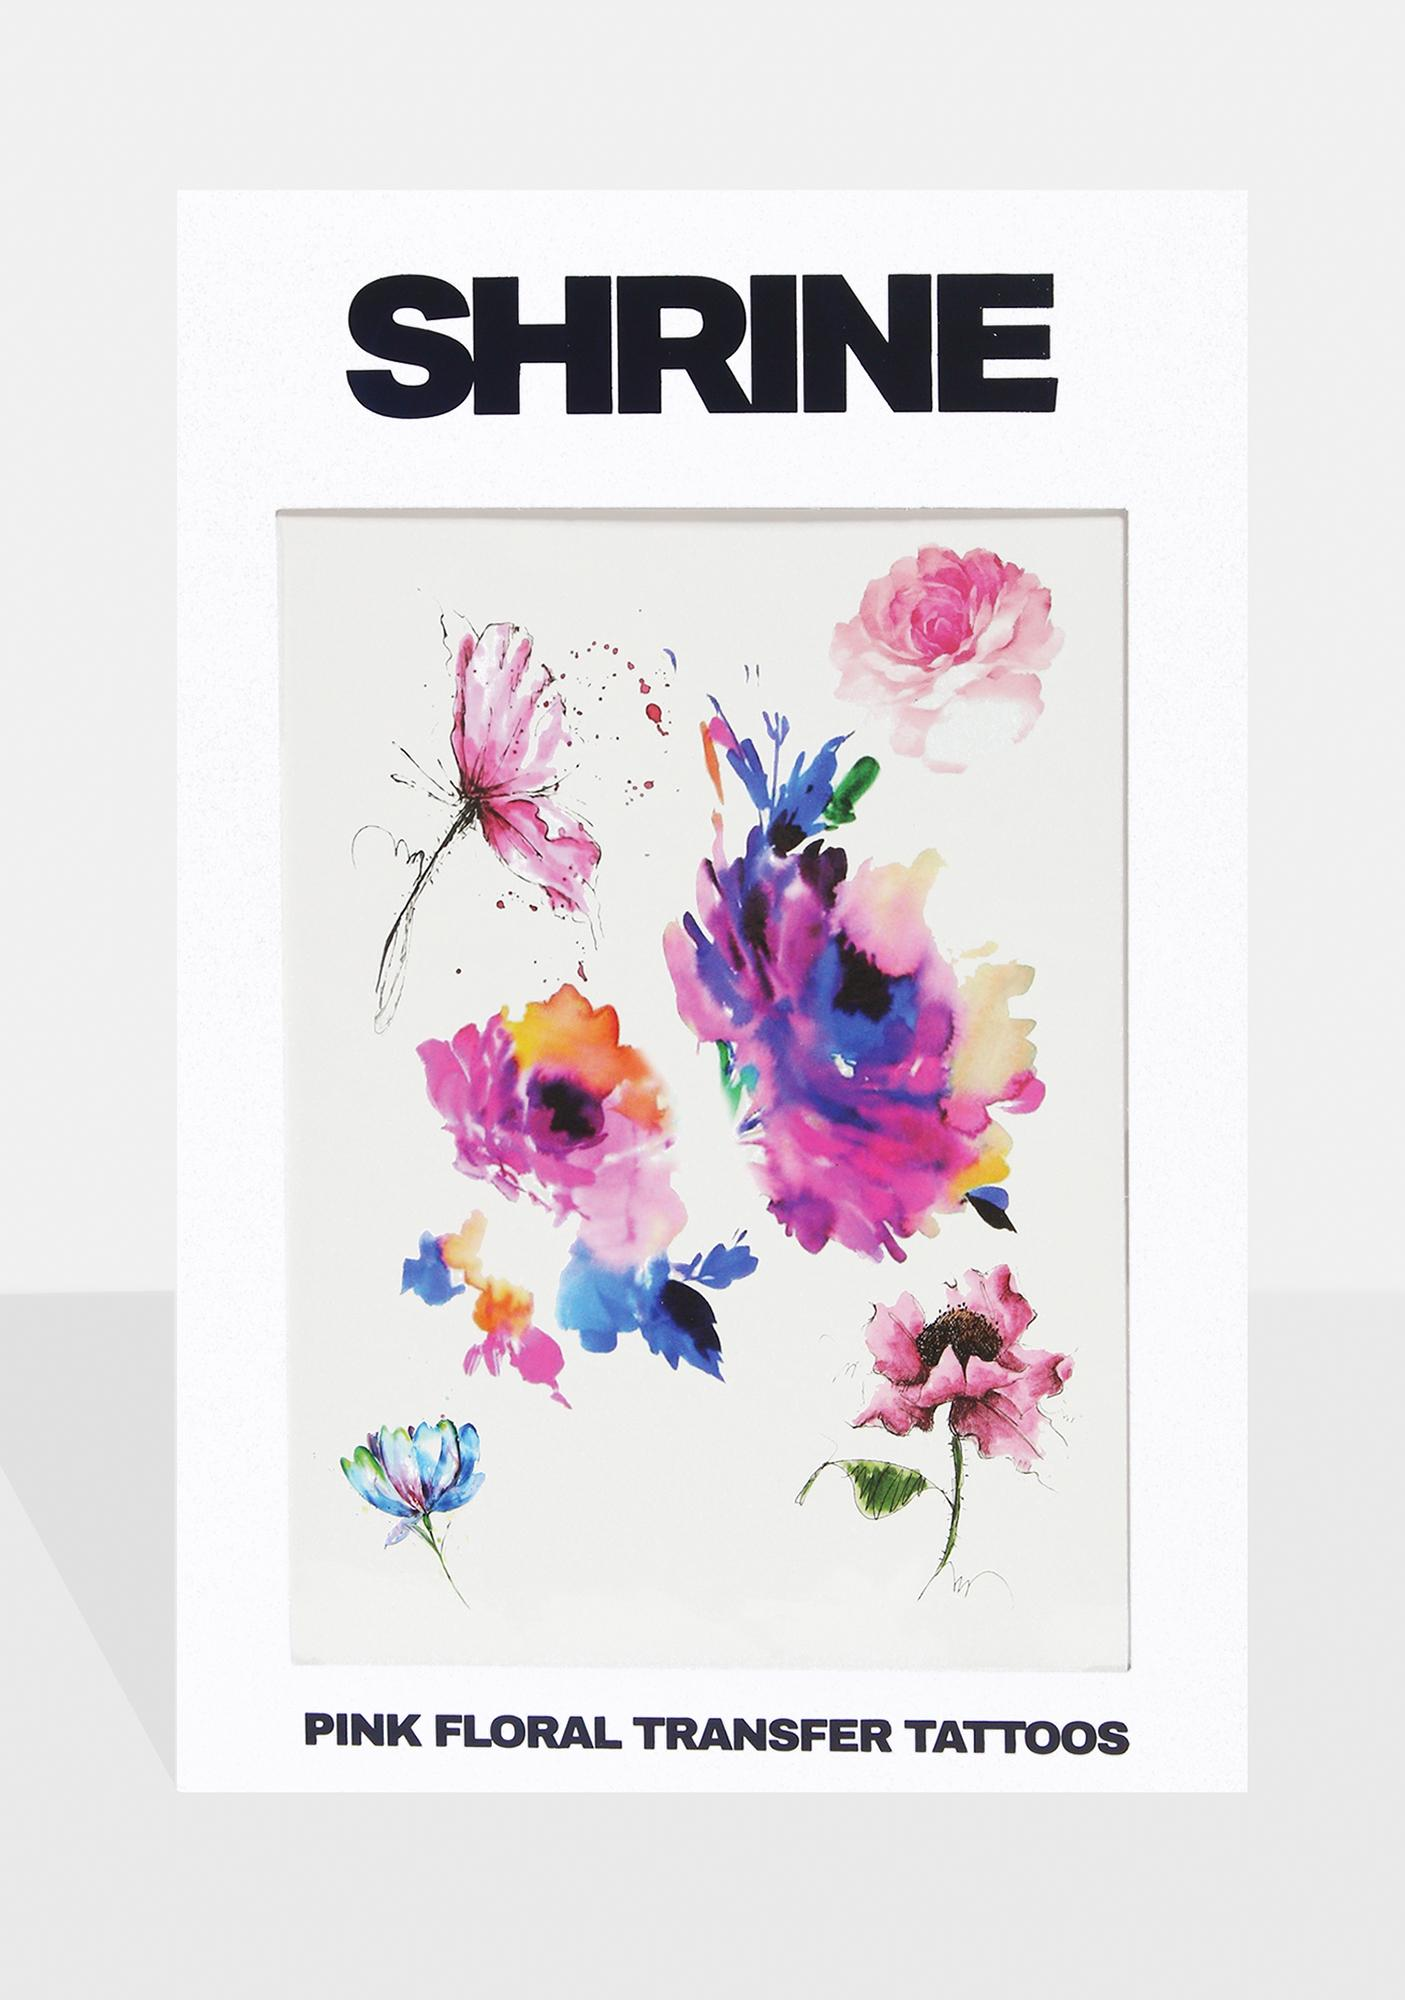 SHRINE Pink Floral Transfer Tattoos